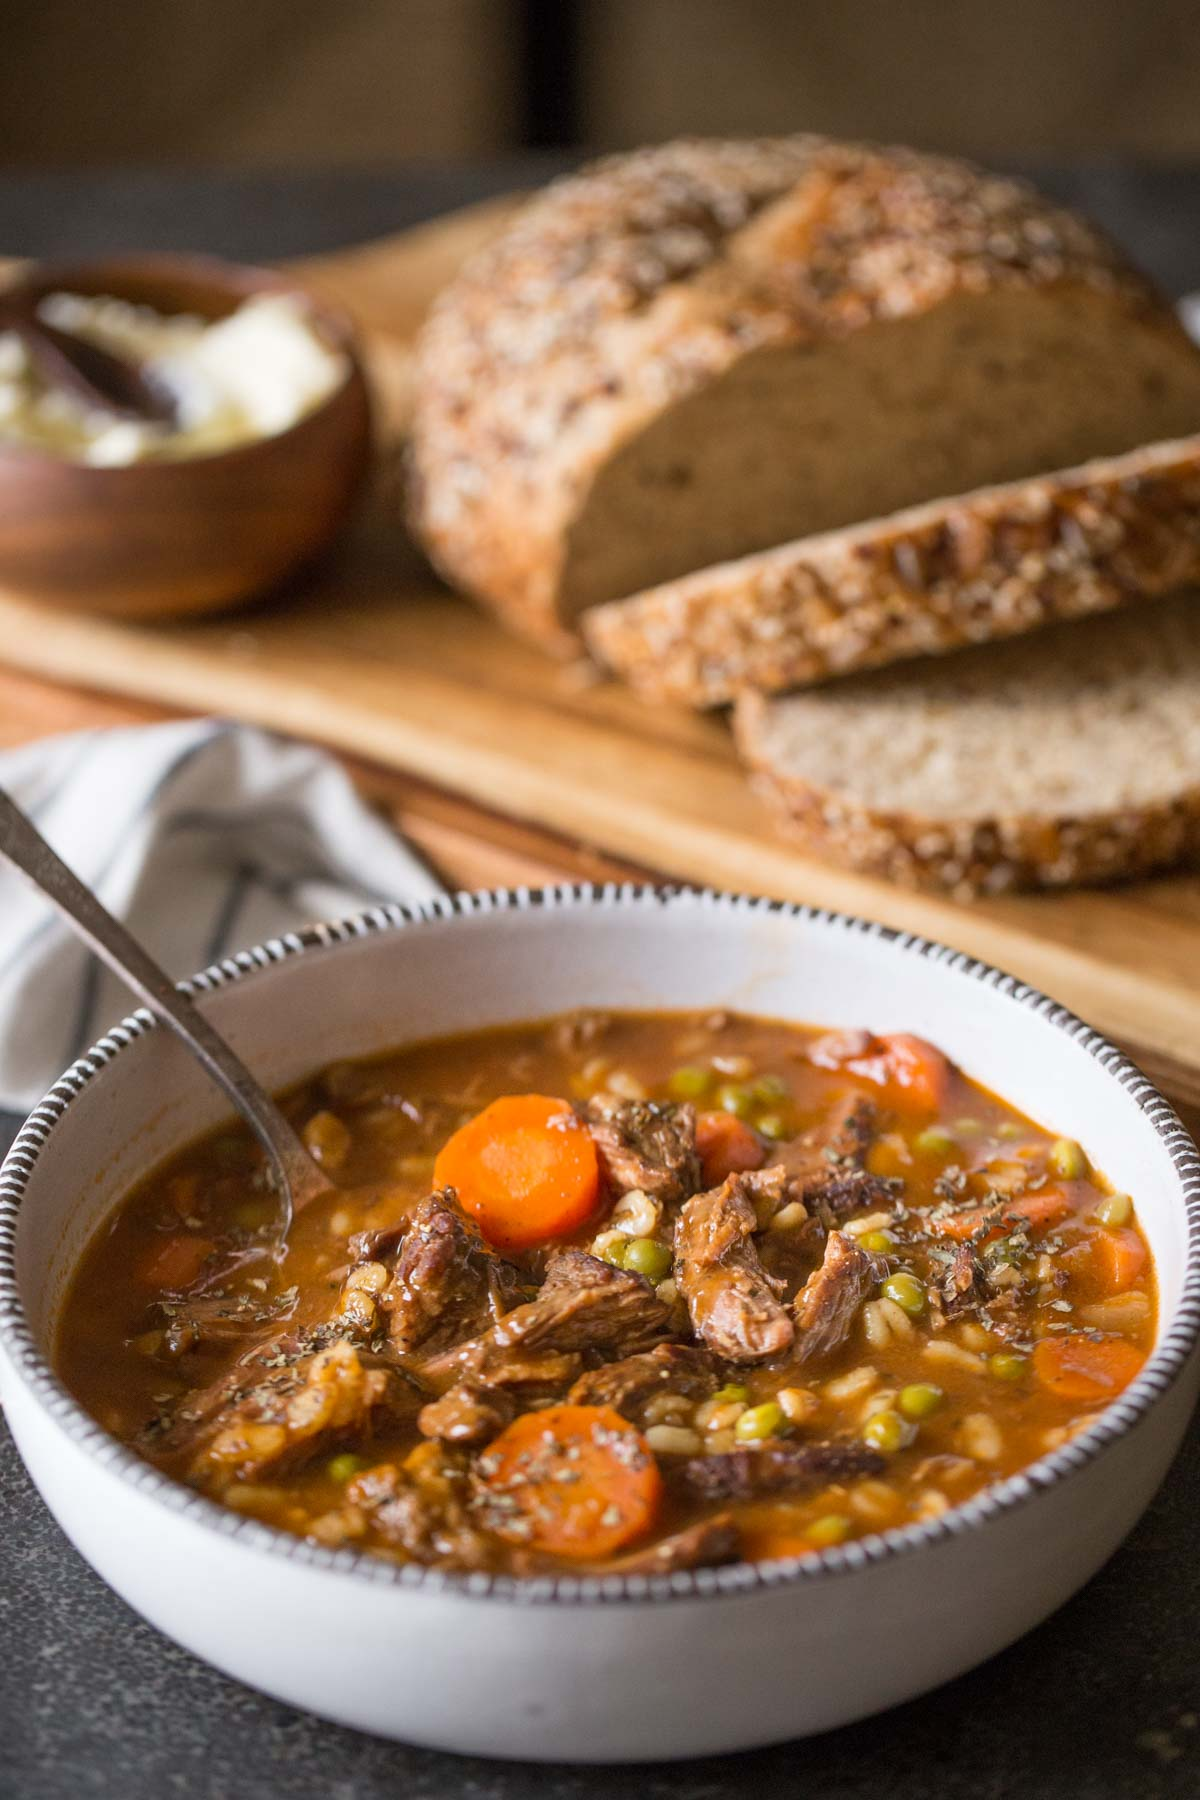 This Beef and Barley Vegetable Soup is hearty and flavorful and tastes so very good on a cold day. Serve it with warm, crusty bread and soft butter. Good for body and soul!